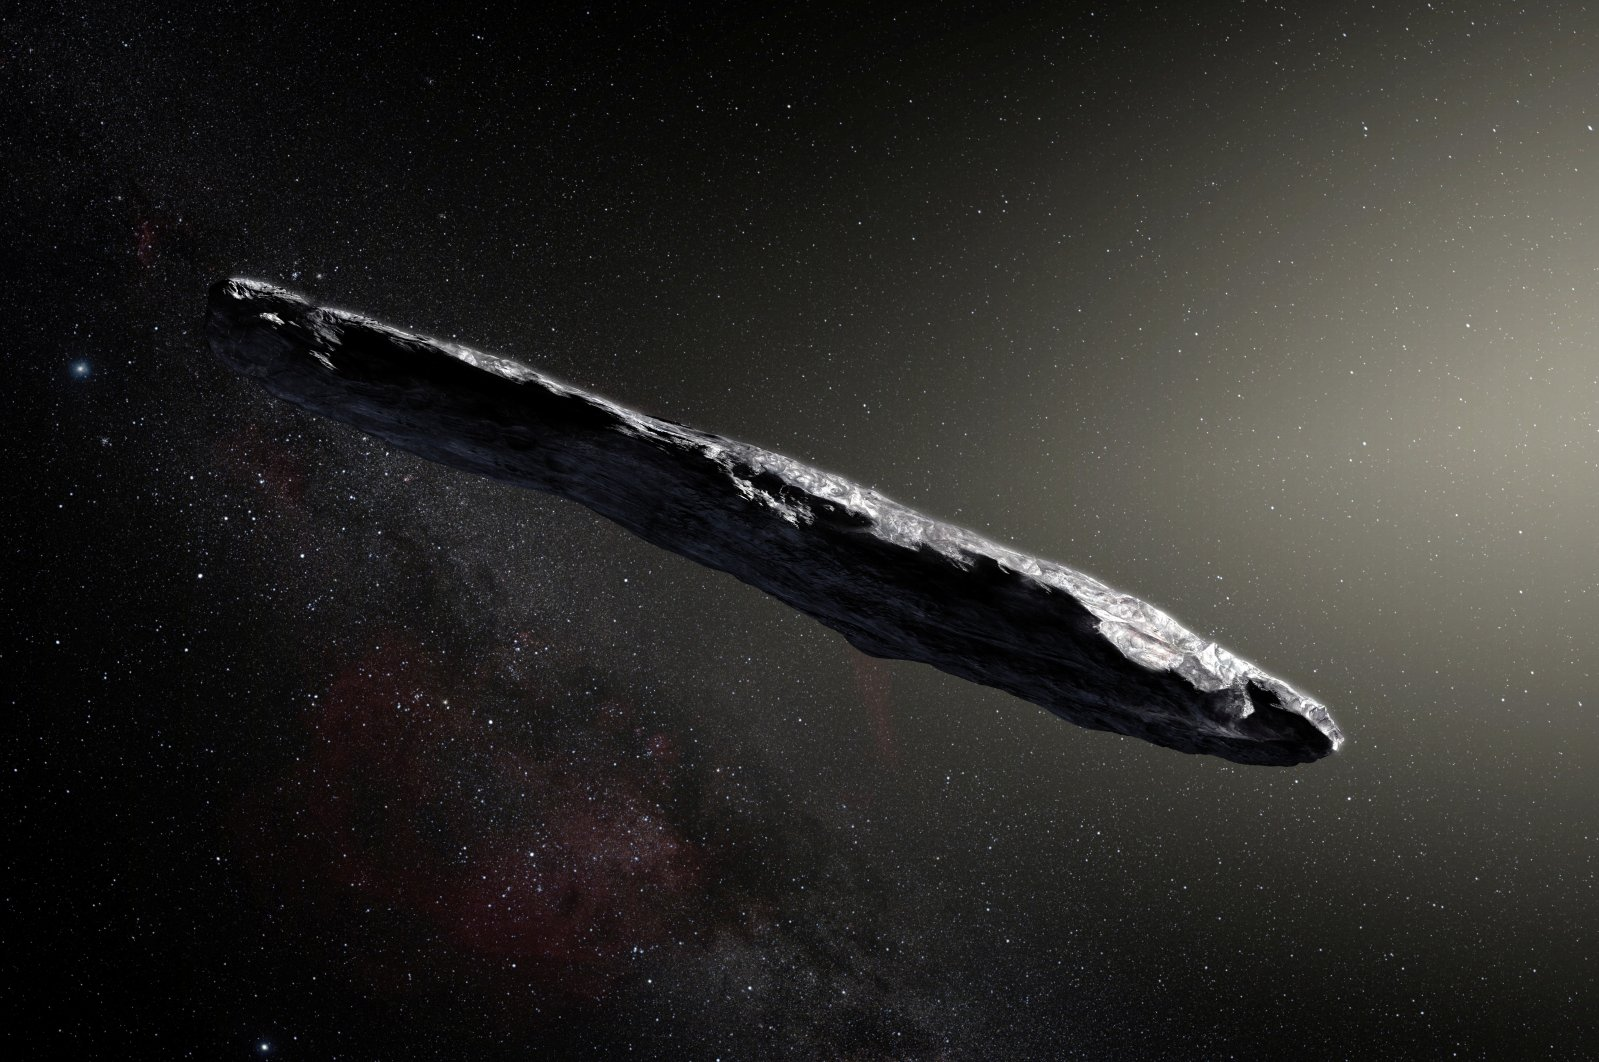 This artist's impression shows the first-known interstellar object to visit the solar system, 'Oumuamua, which was discovered in 2017. (Reuters Photo)